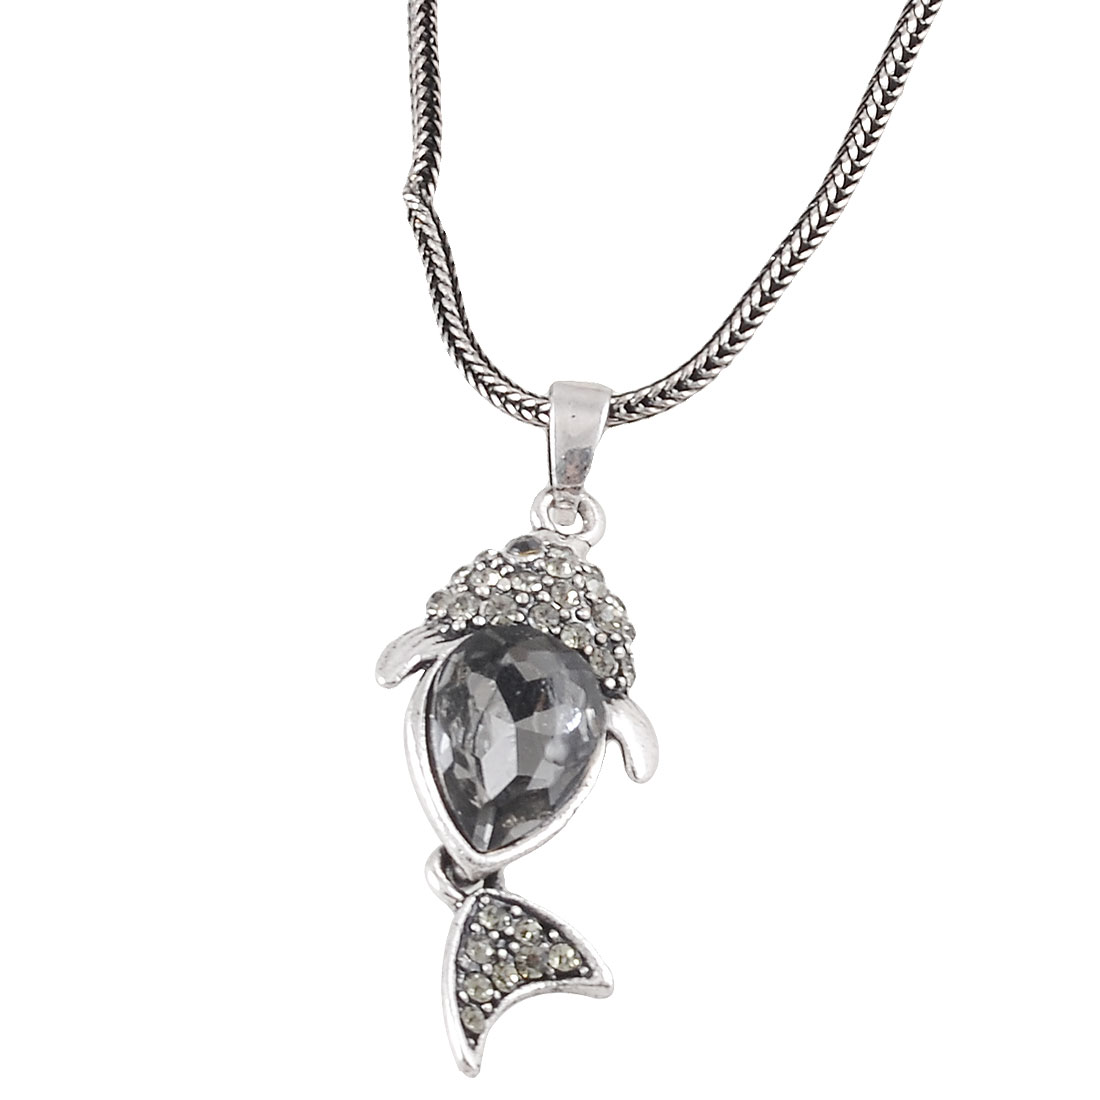 Rhinestone Decor Fish Pendant Necklace Silver Tone Black for Women